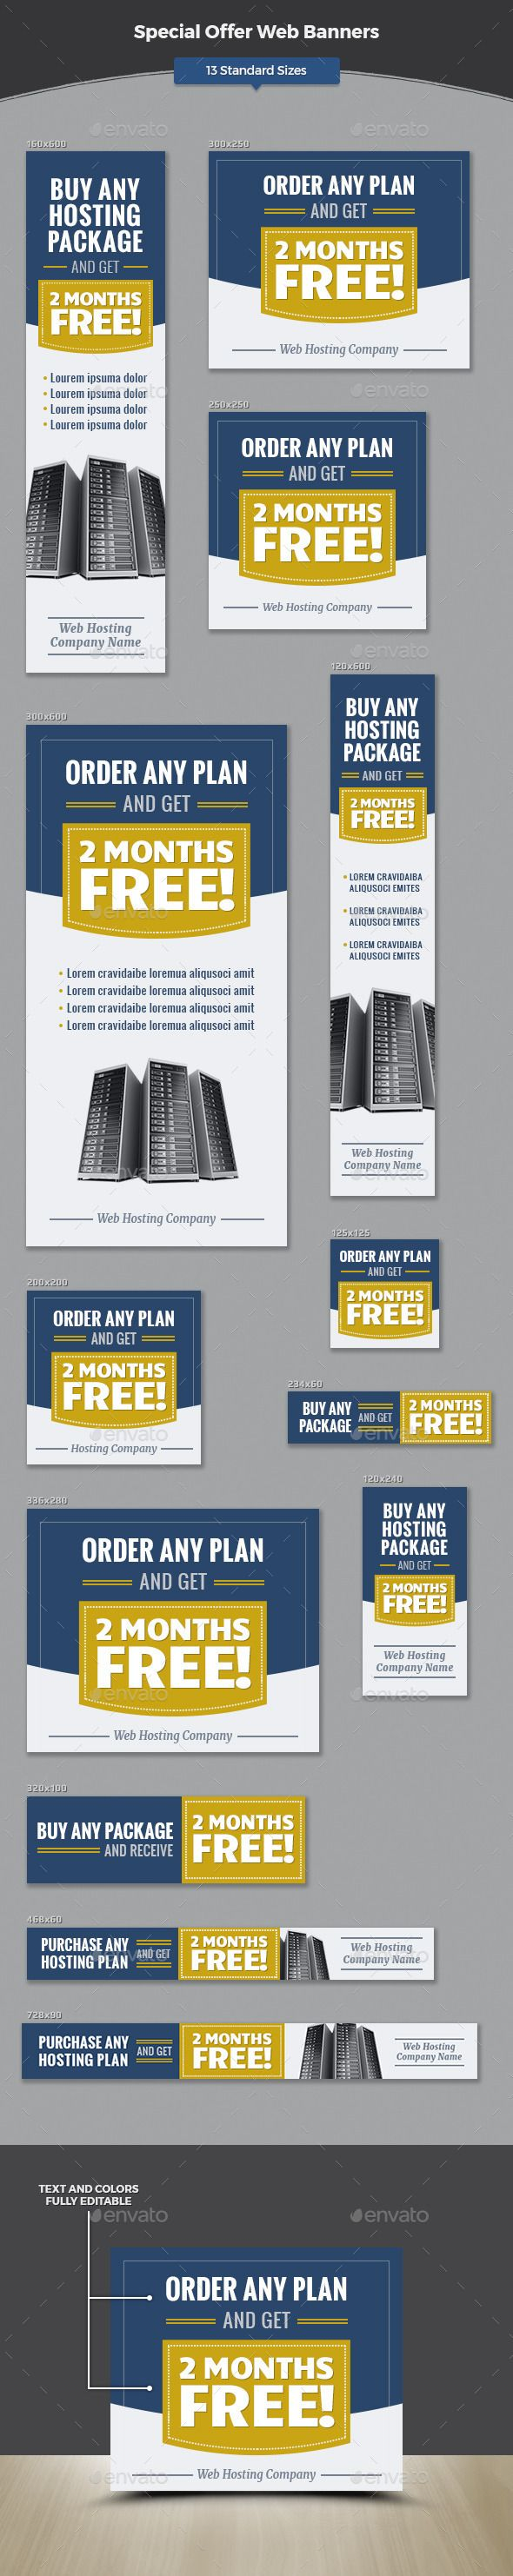 Special Offer Web Banners Template #design #web #ads Download: http://graphicriver.net/item/special-offer-web-banners/12688226?ref=ksioks